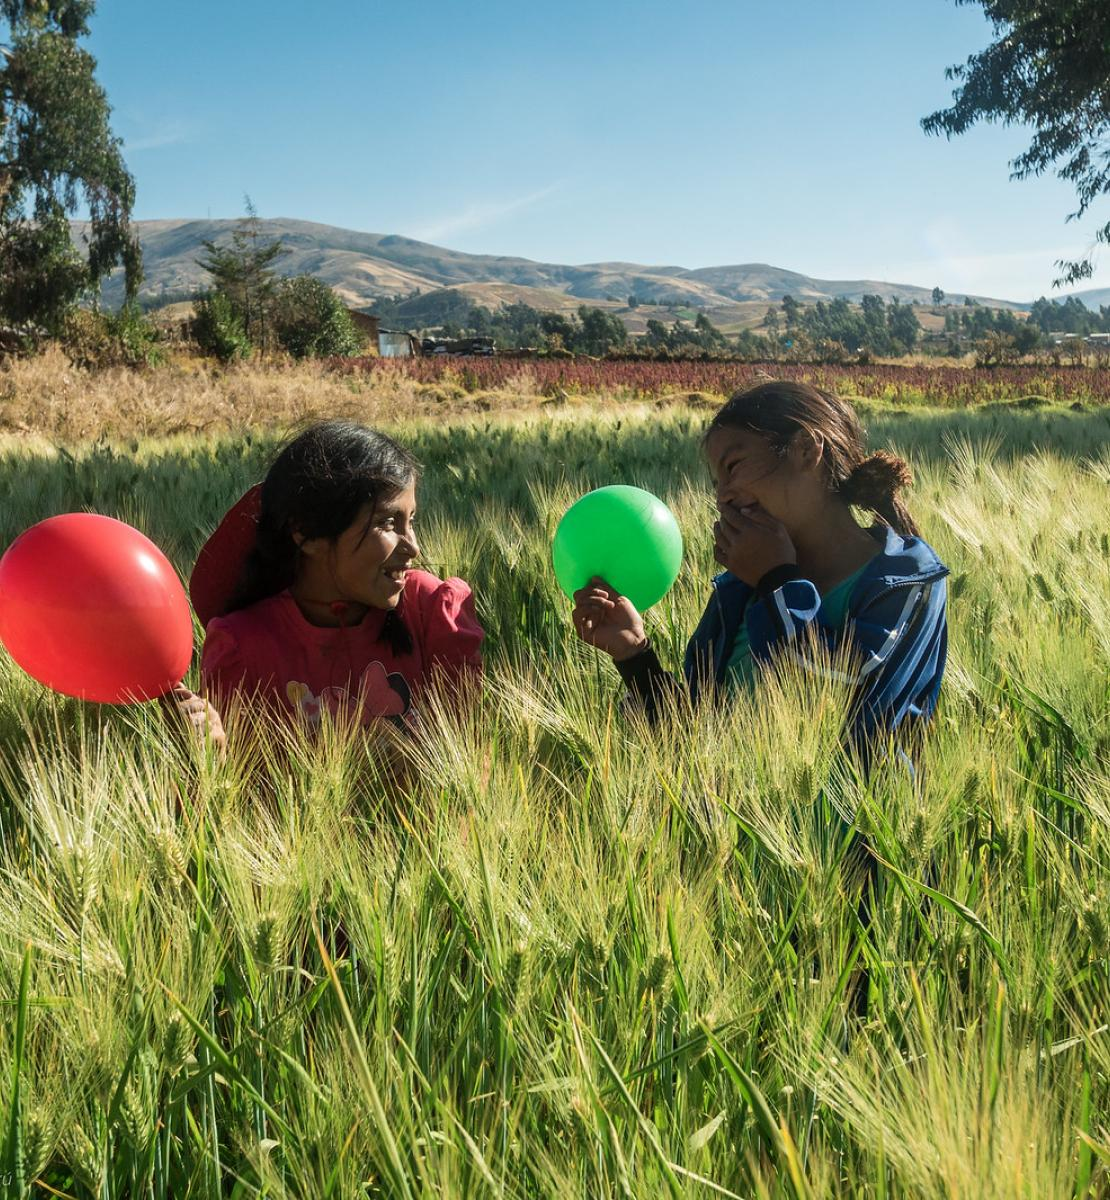 Two girls in a field play with a green and red balloon.